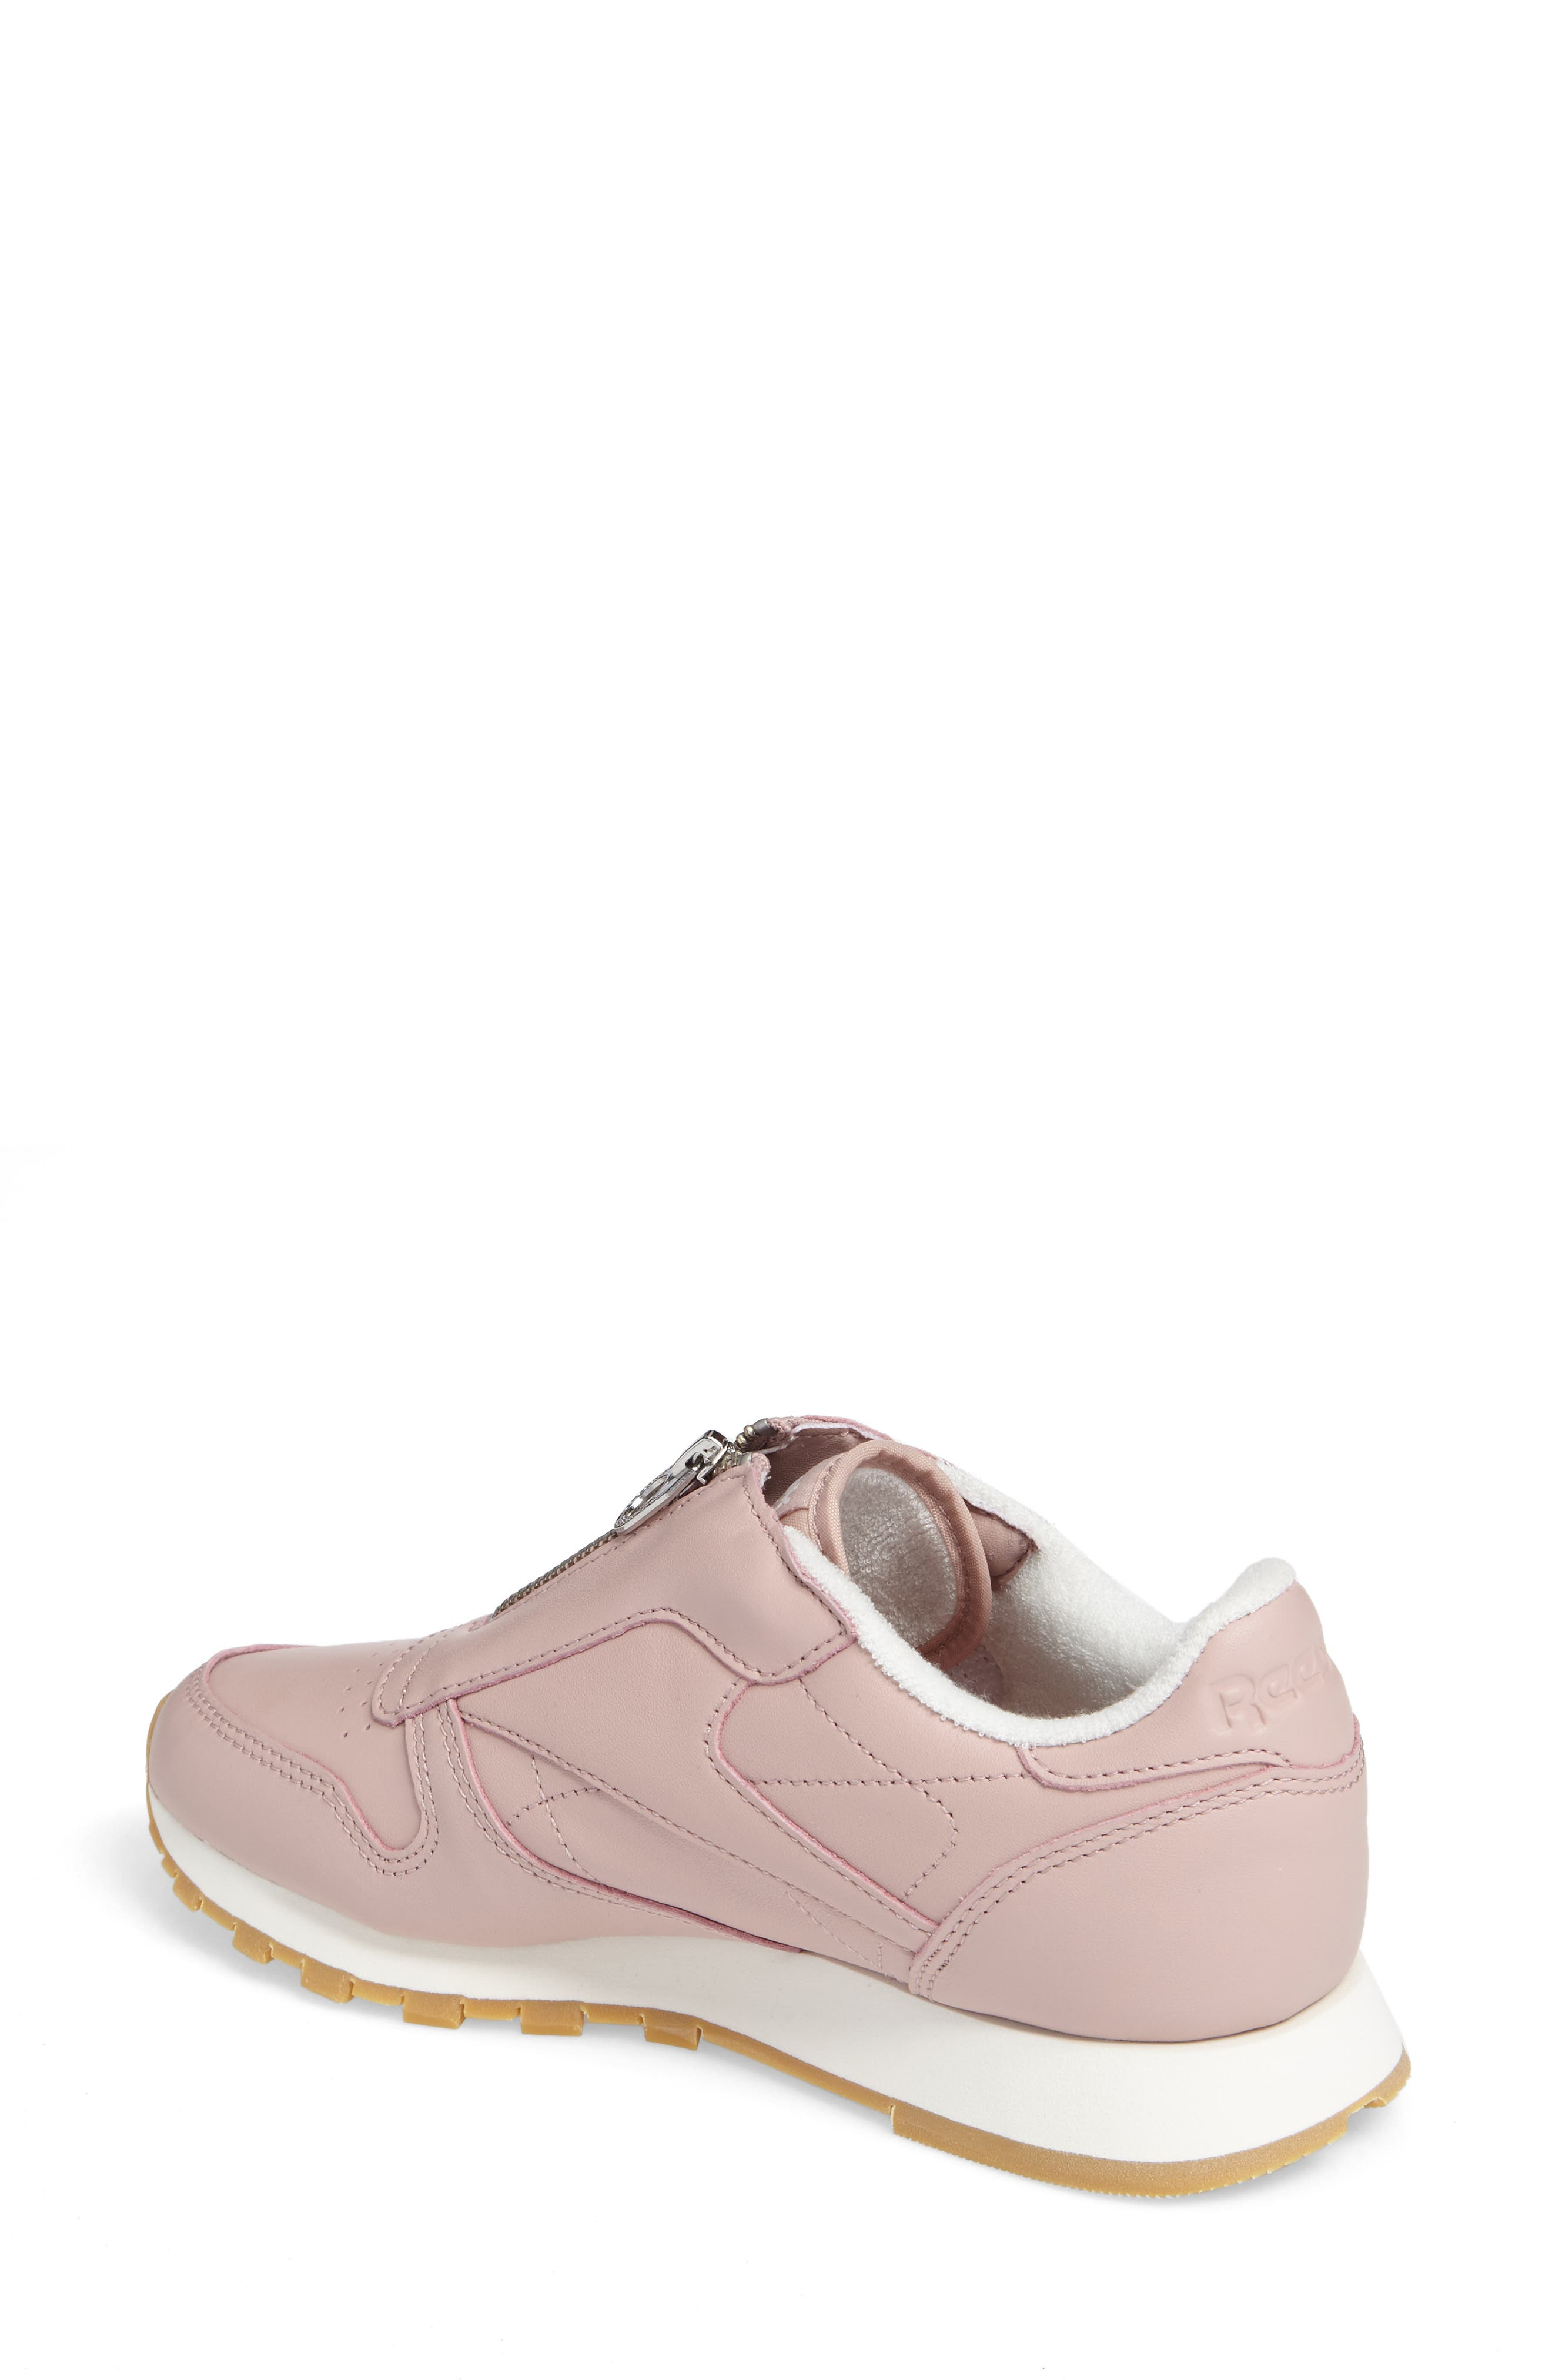 Classic Zip Sneaker,                             Alternate thumbnail 2, color,                             Shell Pink/ Chalk/ Silver